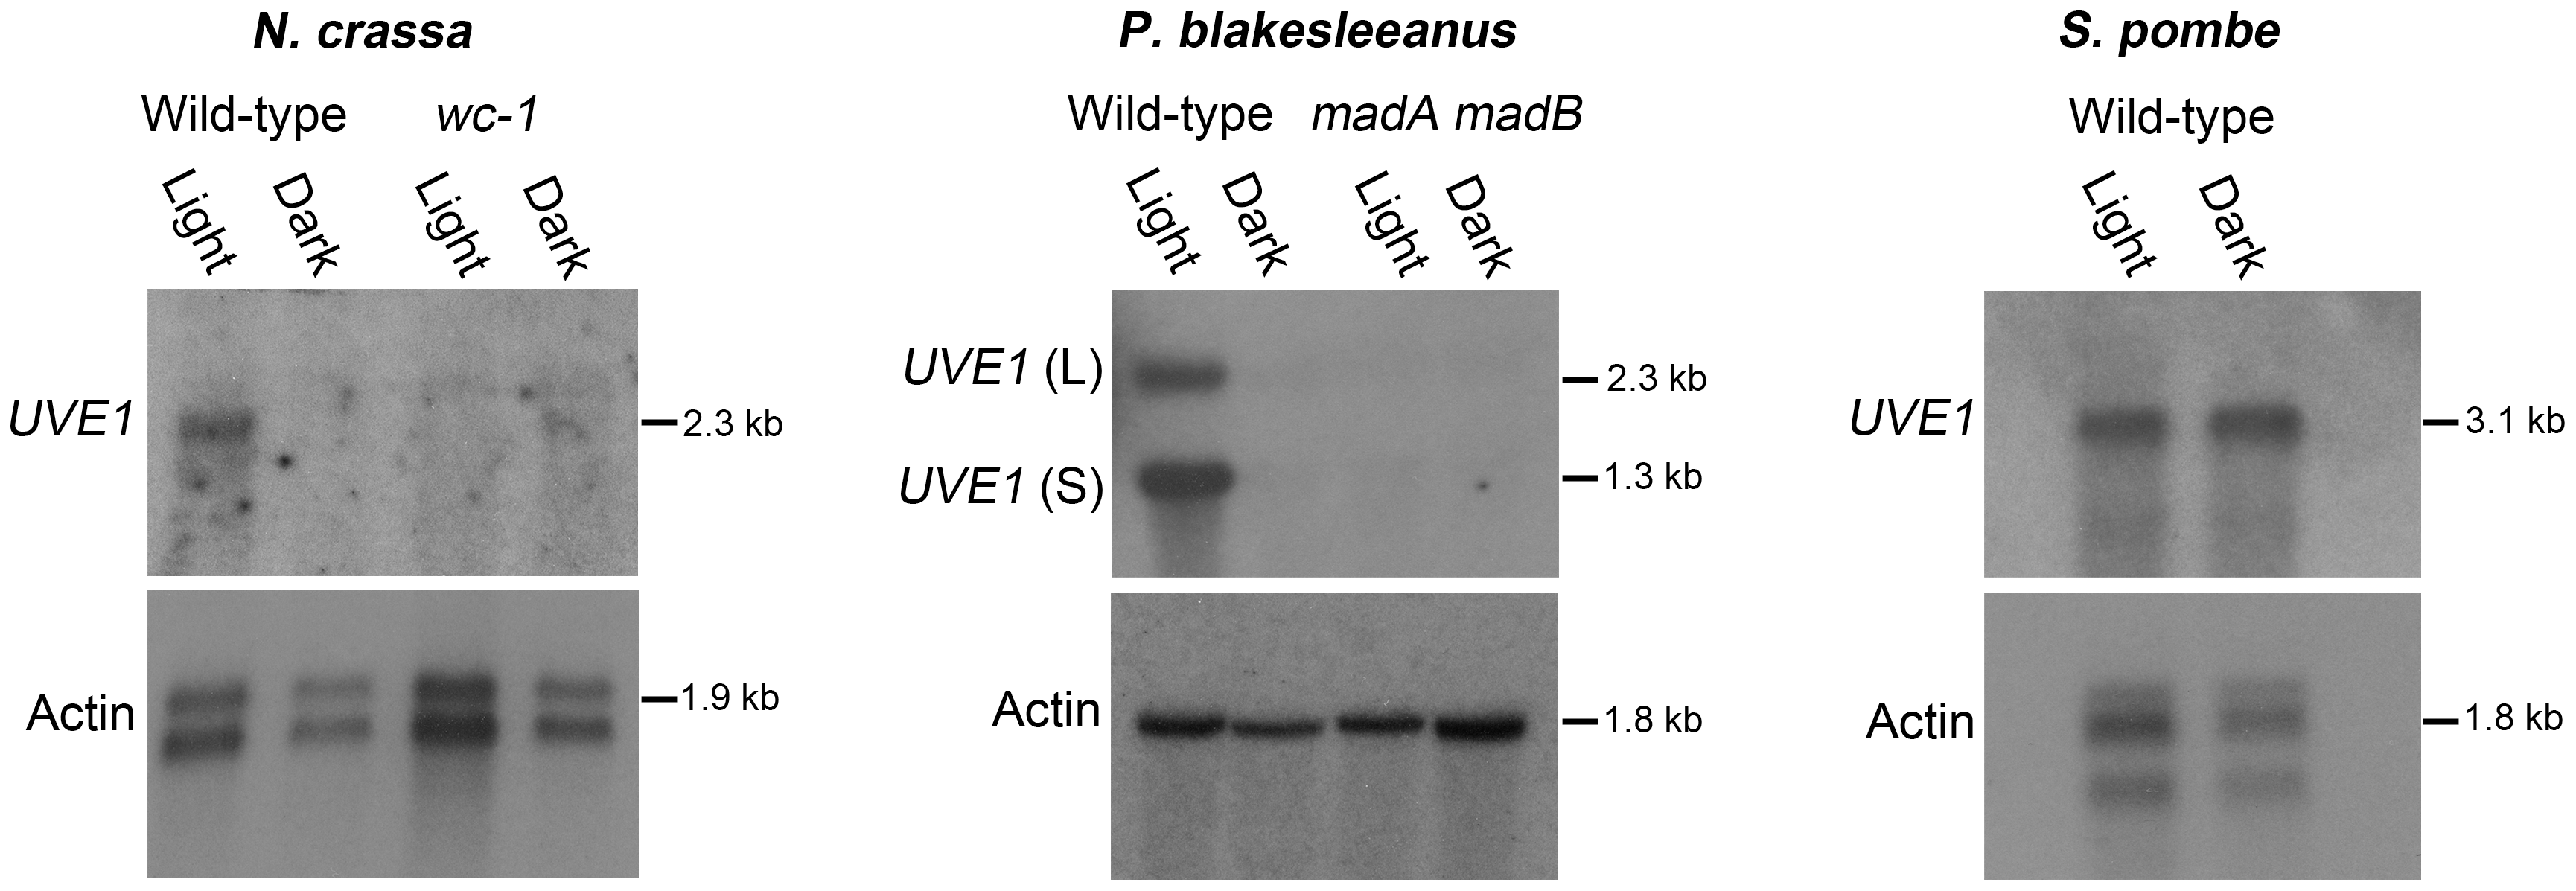 Light regulation of <i>UVE1</i> homologs through the White Collar complex is conserved in fungi.